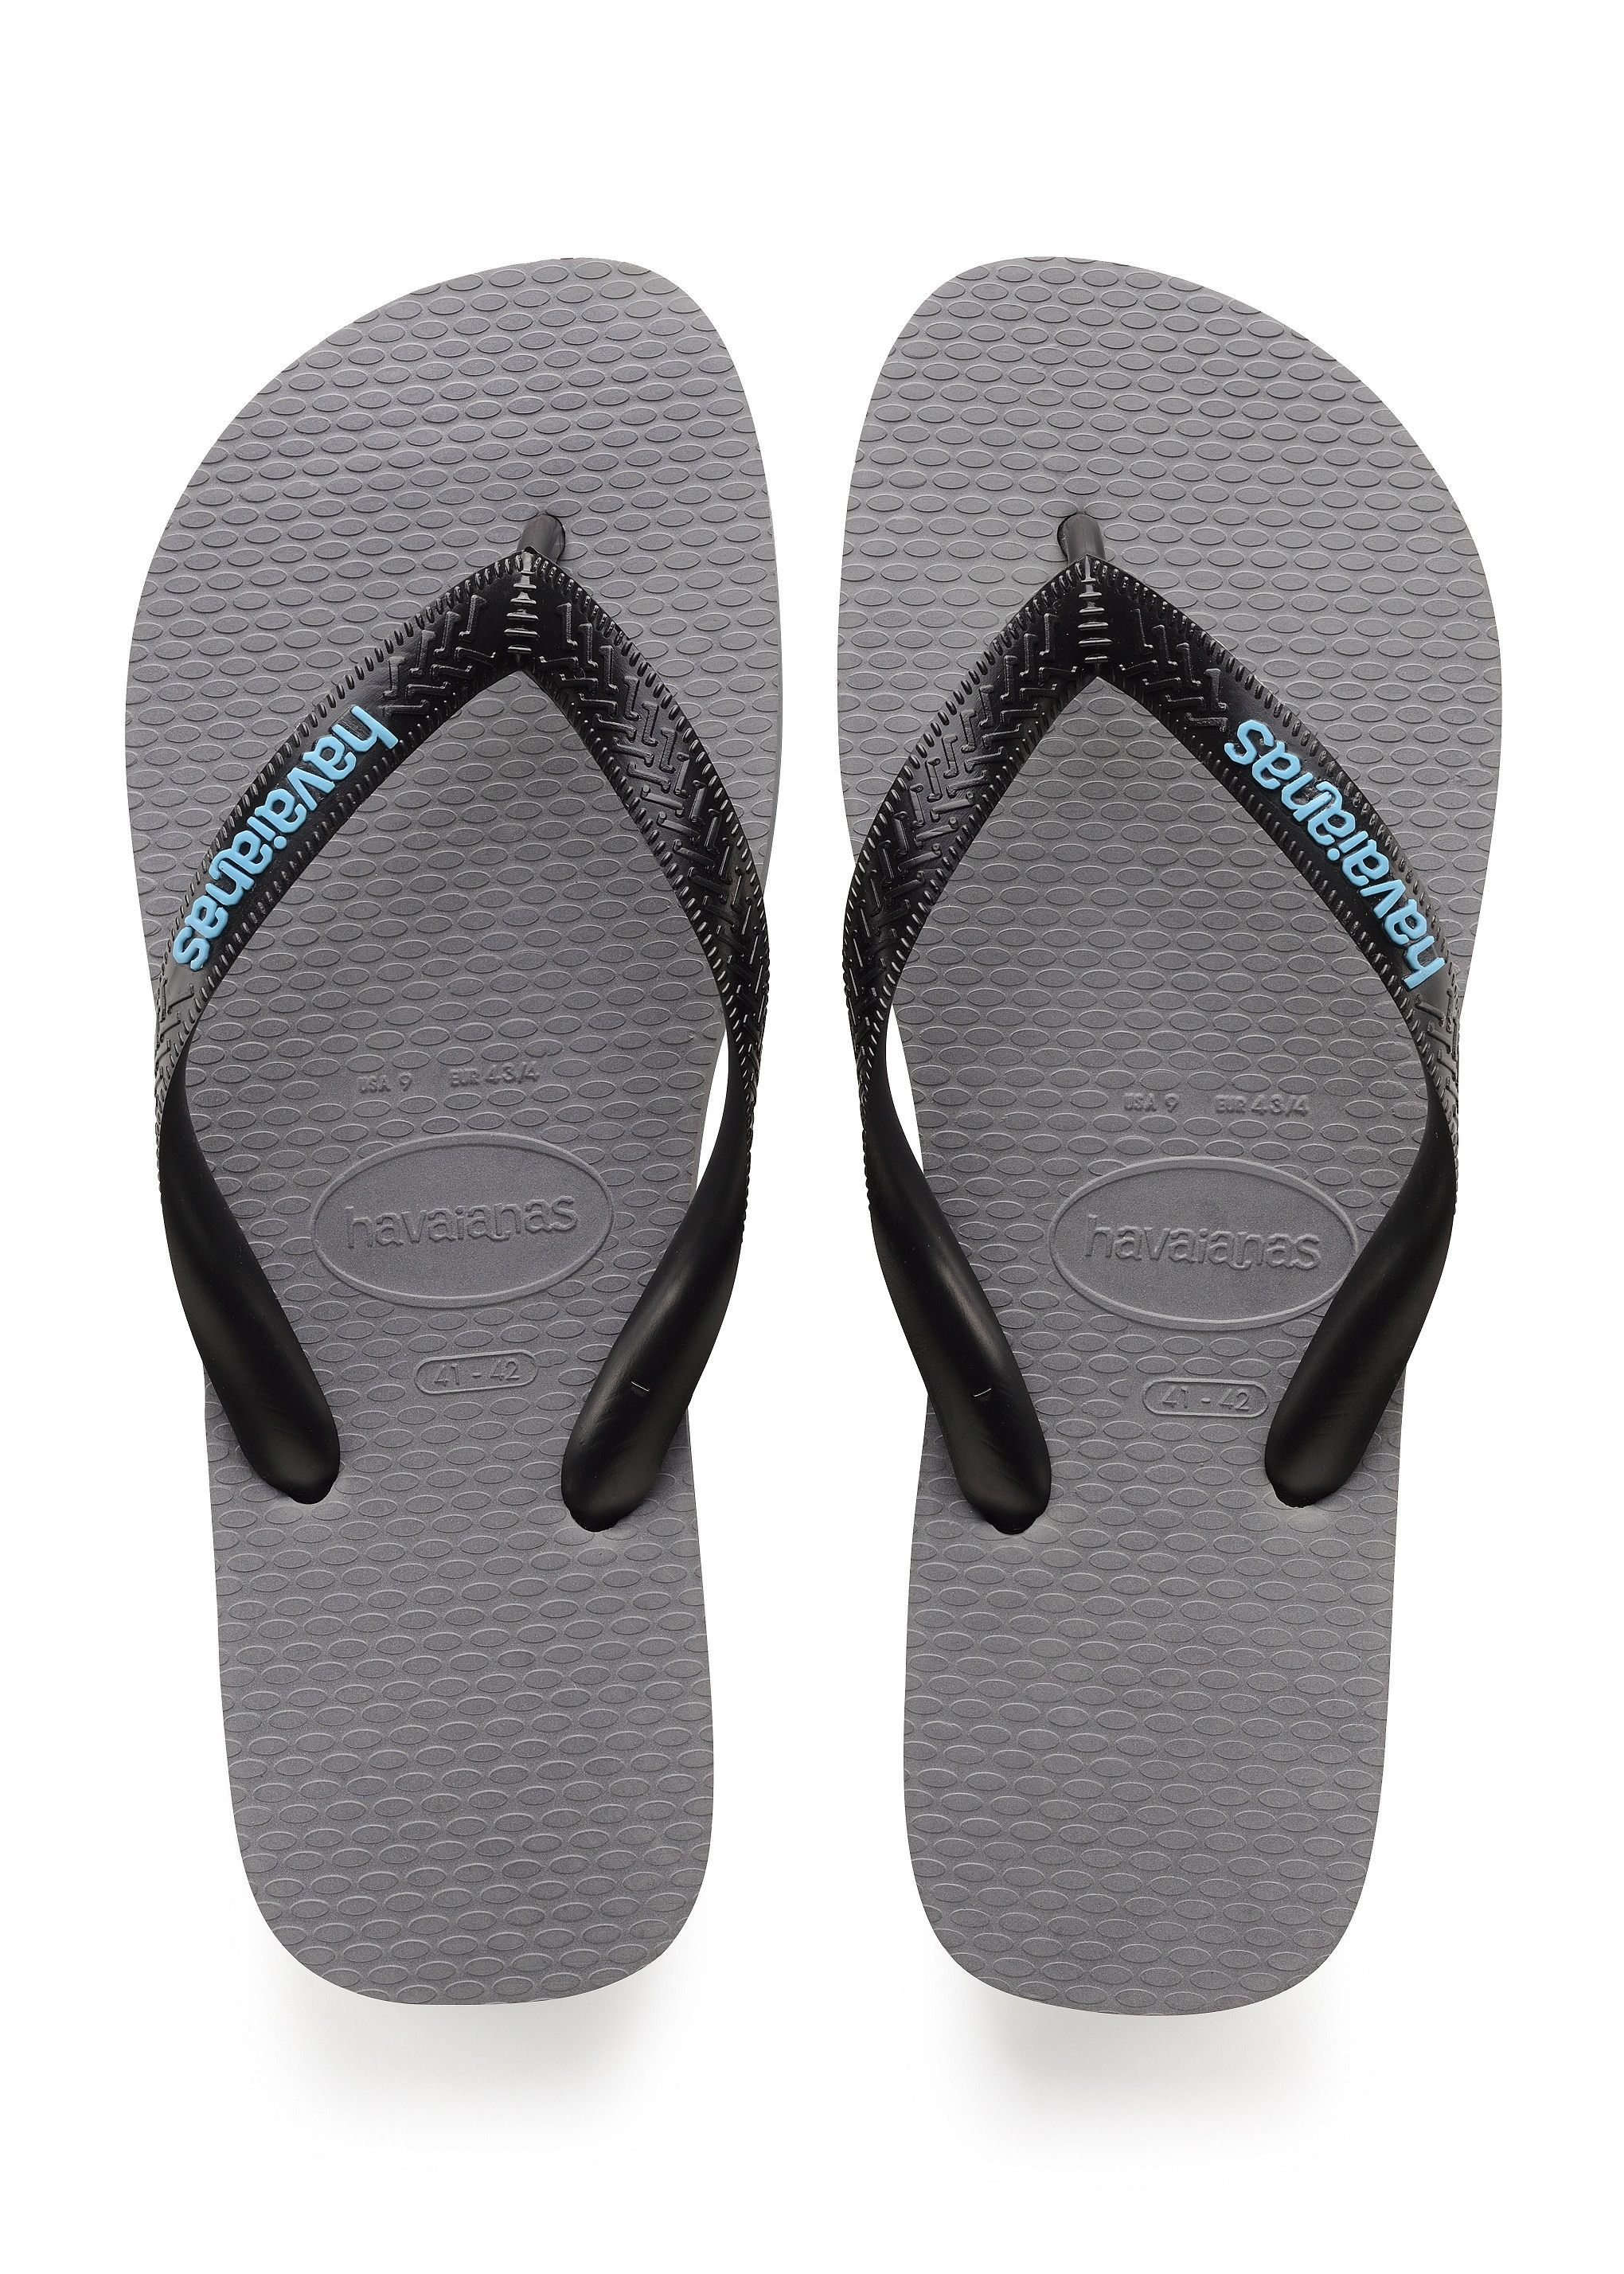 e1b78a9f3 Havaianas Top Logo Filete Sandal Steel Grey Price From  £19.36